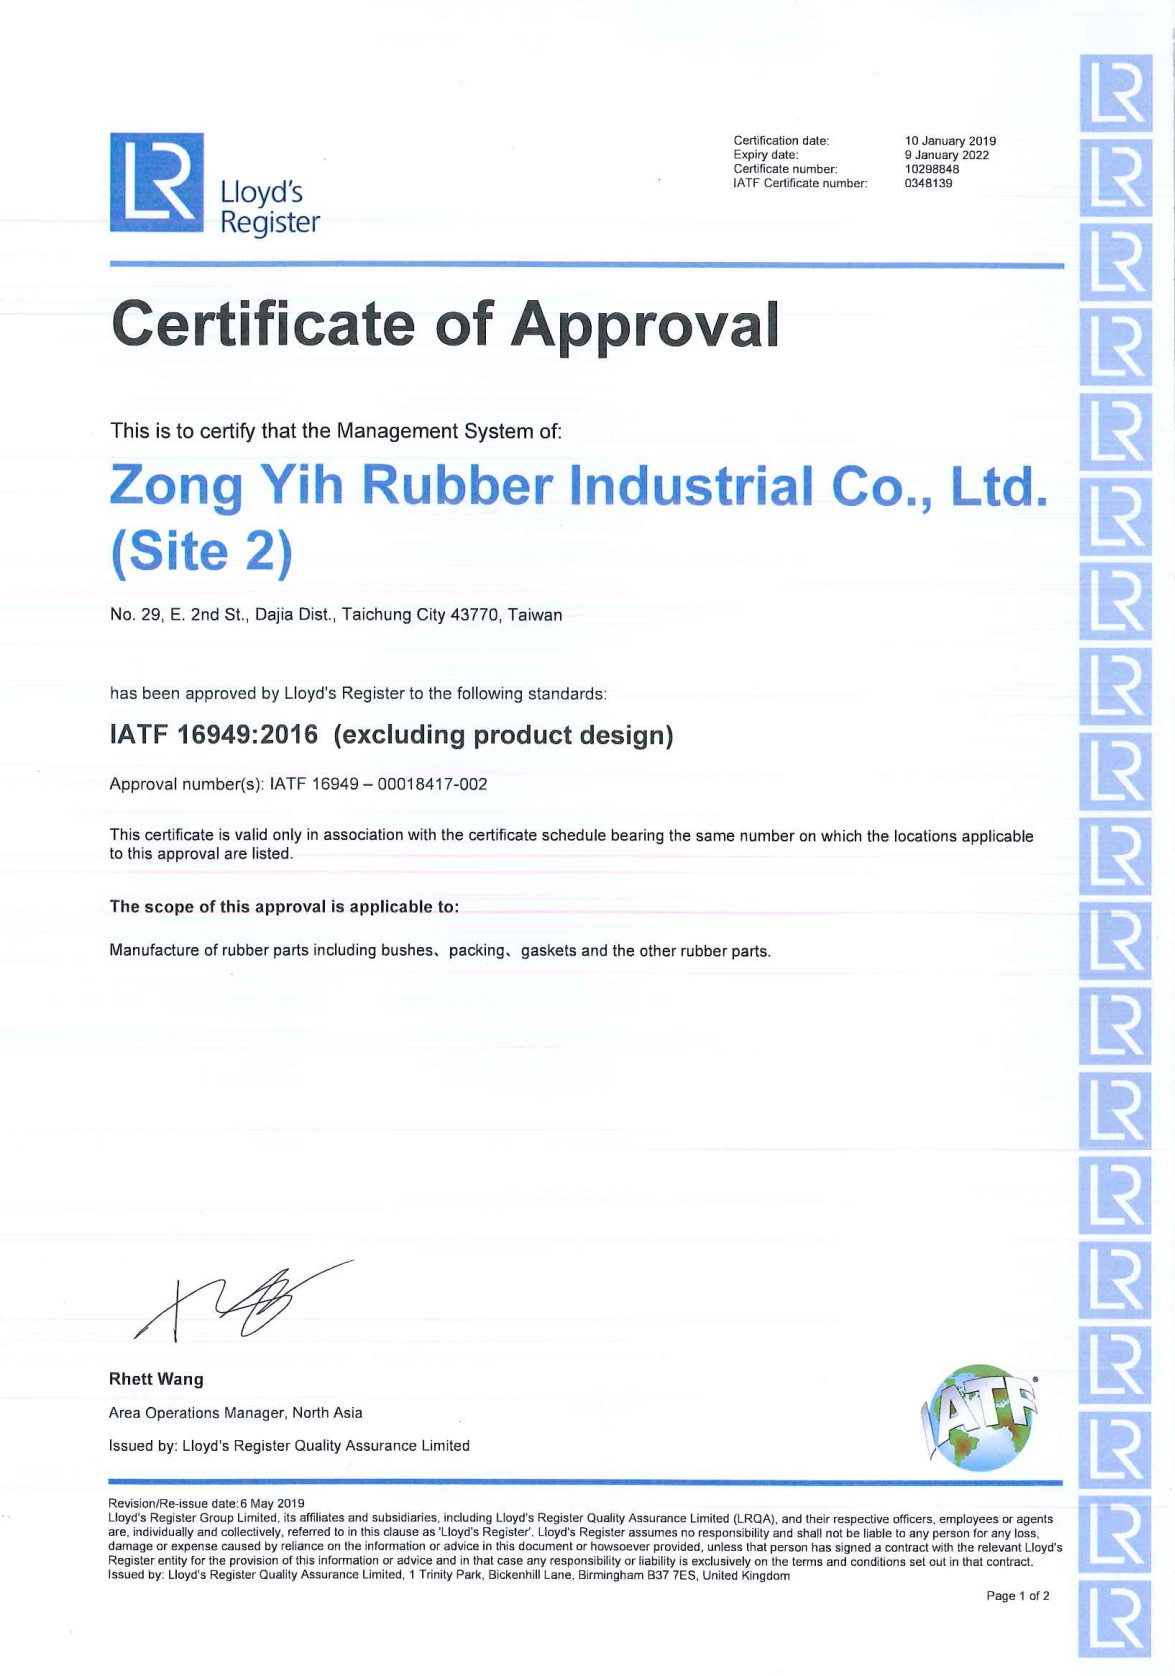 Rubber Parts ISO IATF Certification